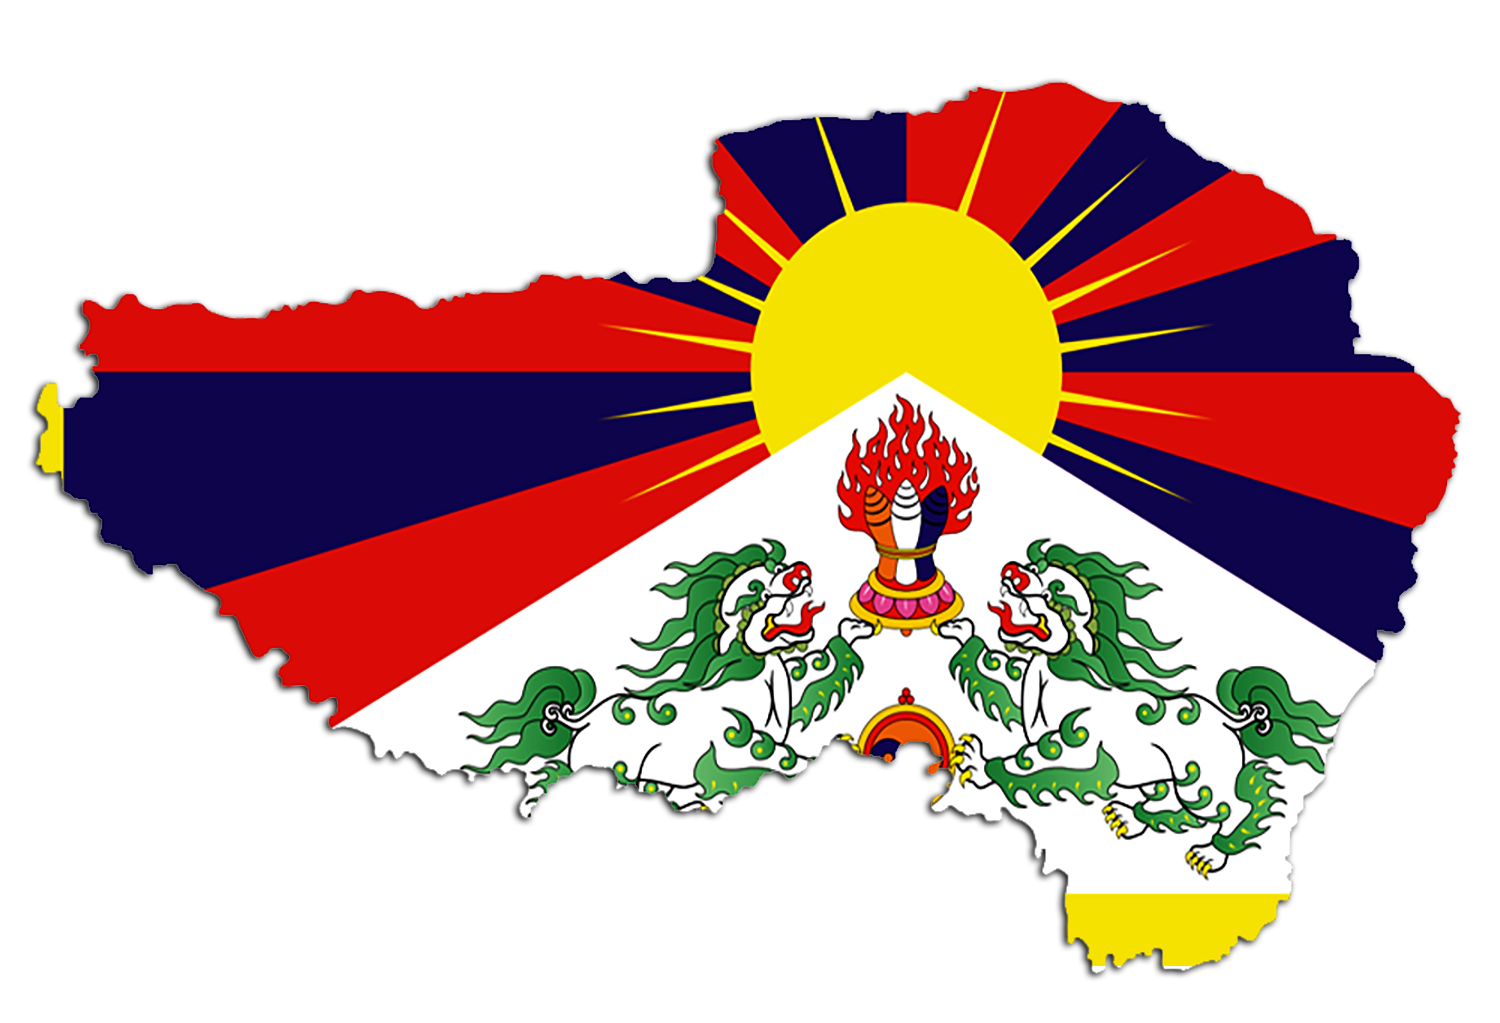 File:The National Flag of Tibet.png - Wikimedia Commons